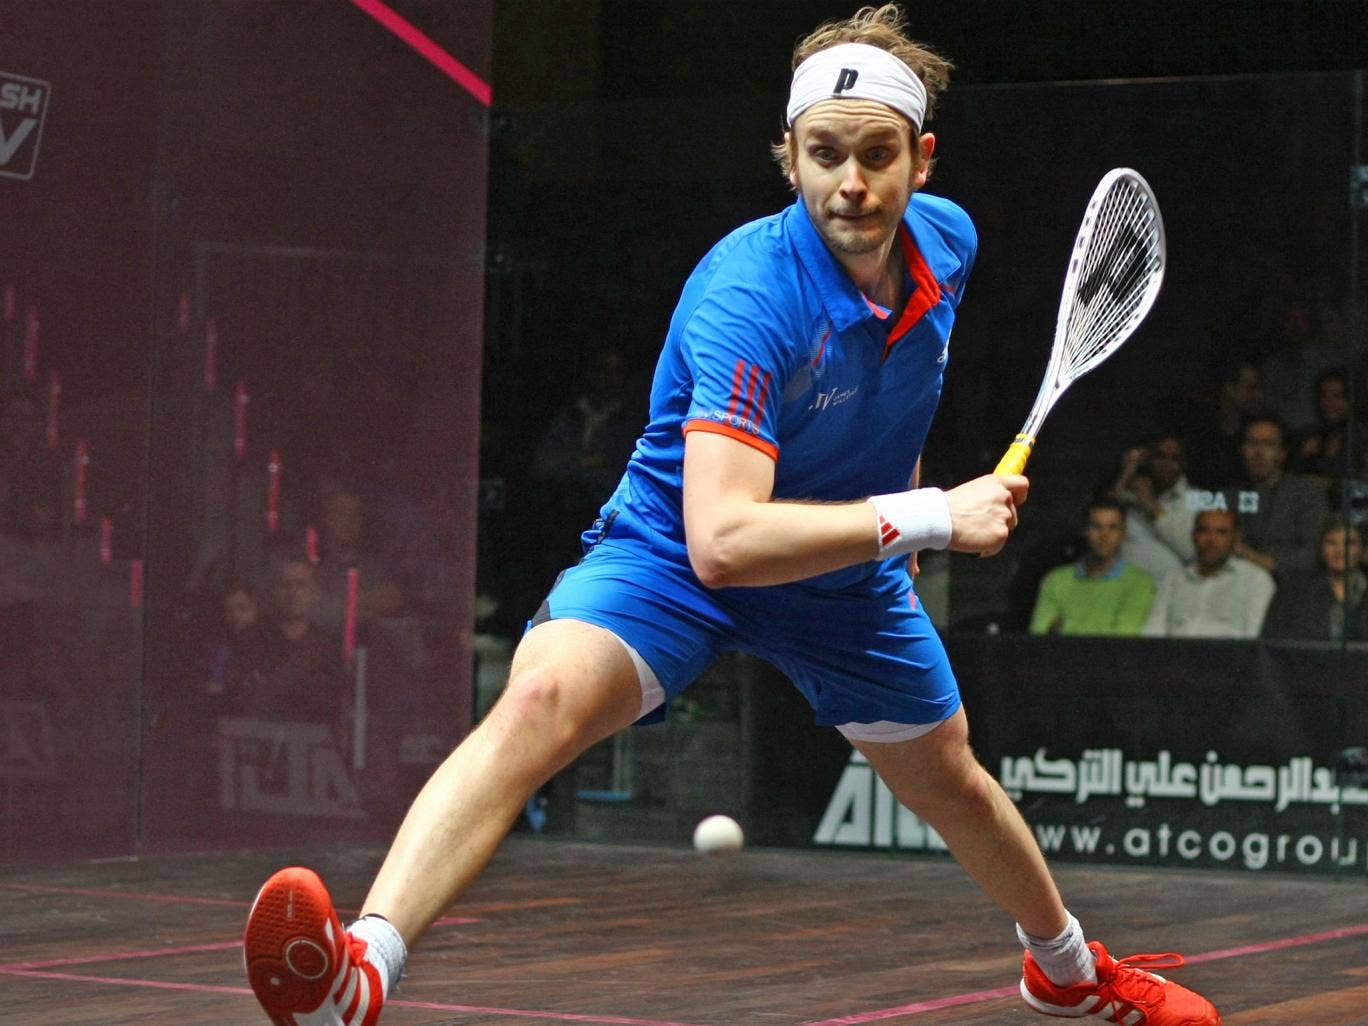 Britain's James Willstrop (pictured) and Nick Matthew would be strong medal contenders should squash become an Olympic sport